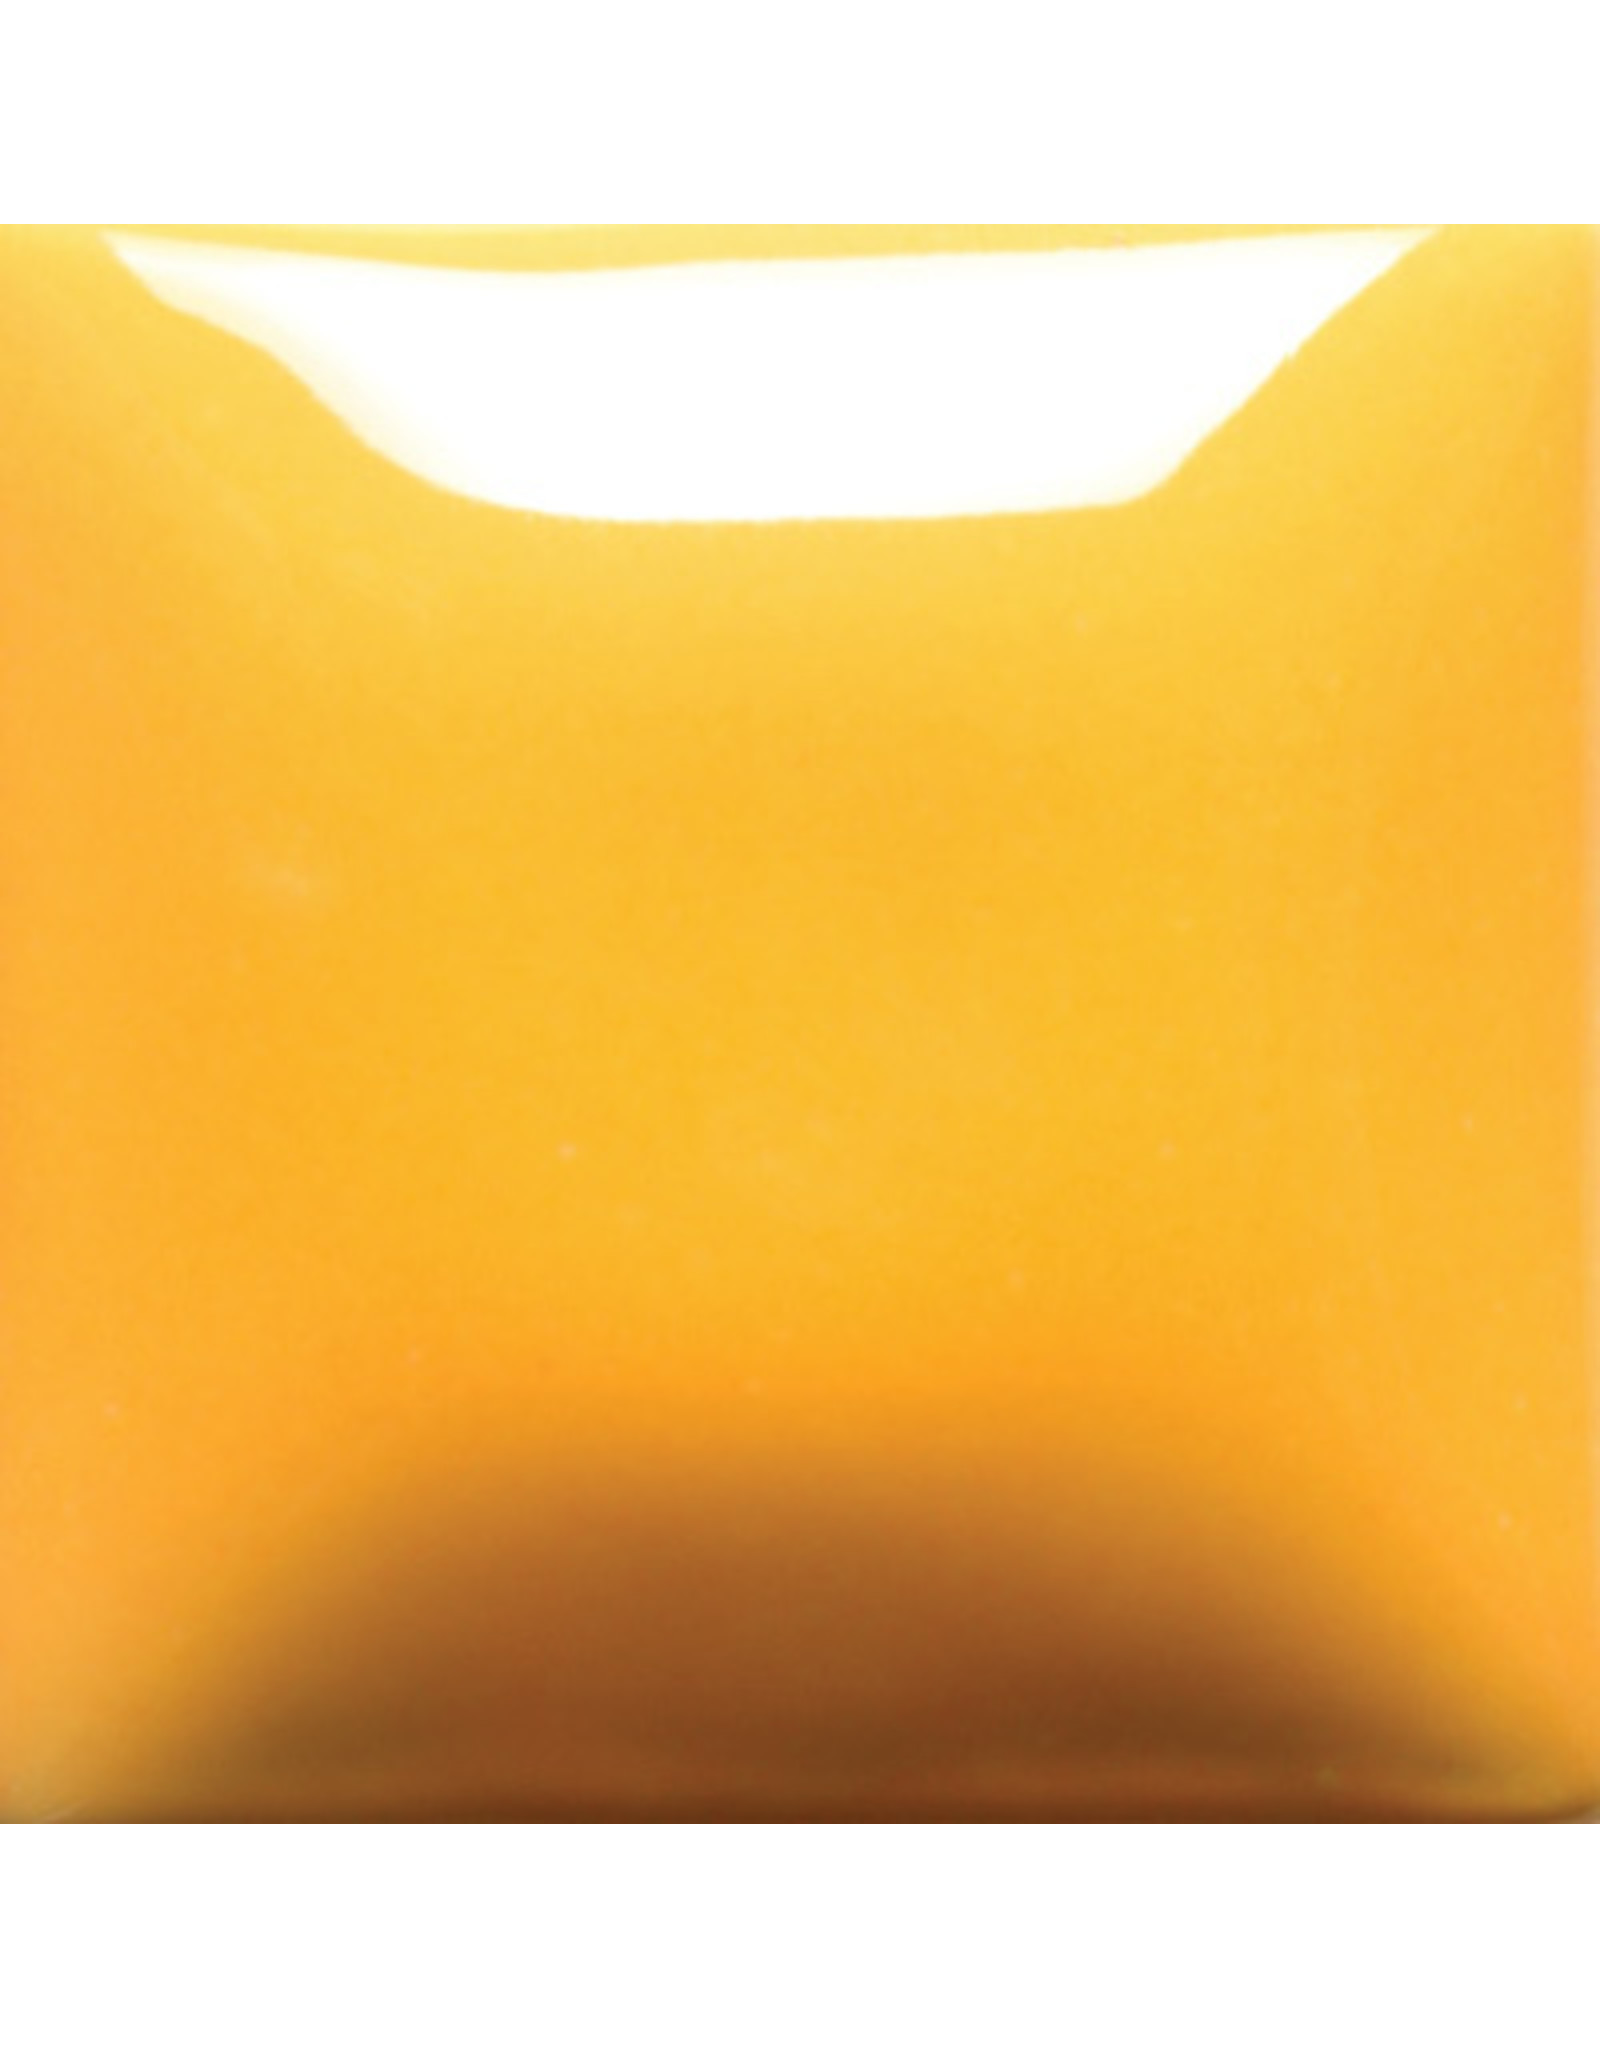 Mayco Mayco Foundations Yellow-orange 473ml